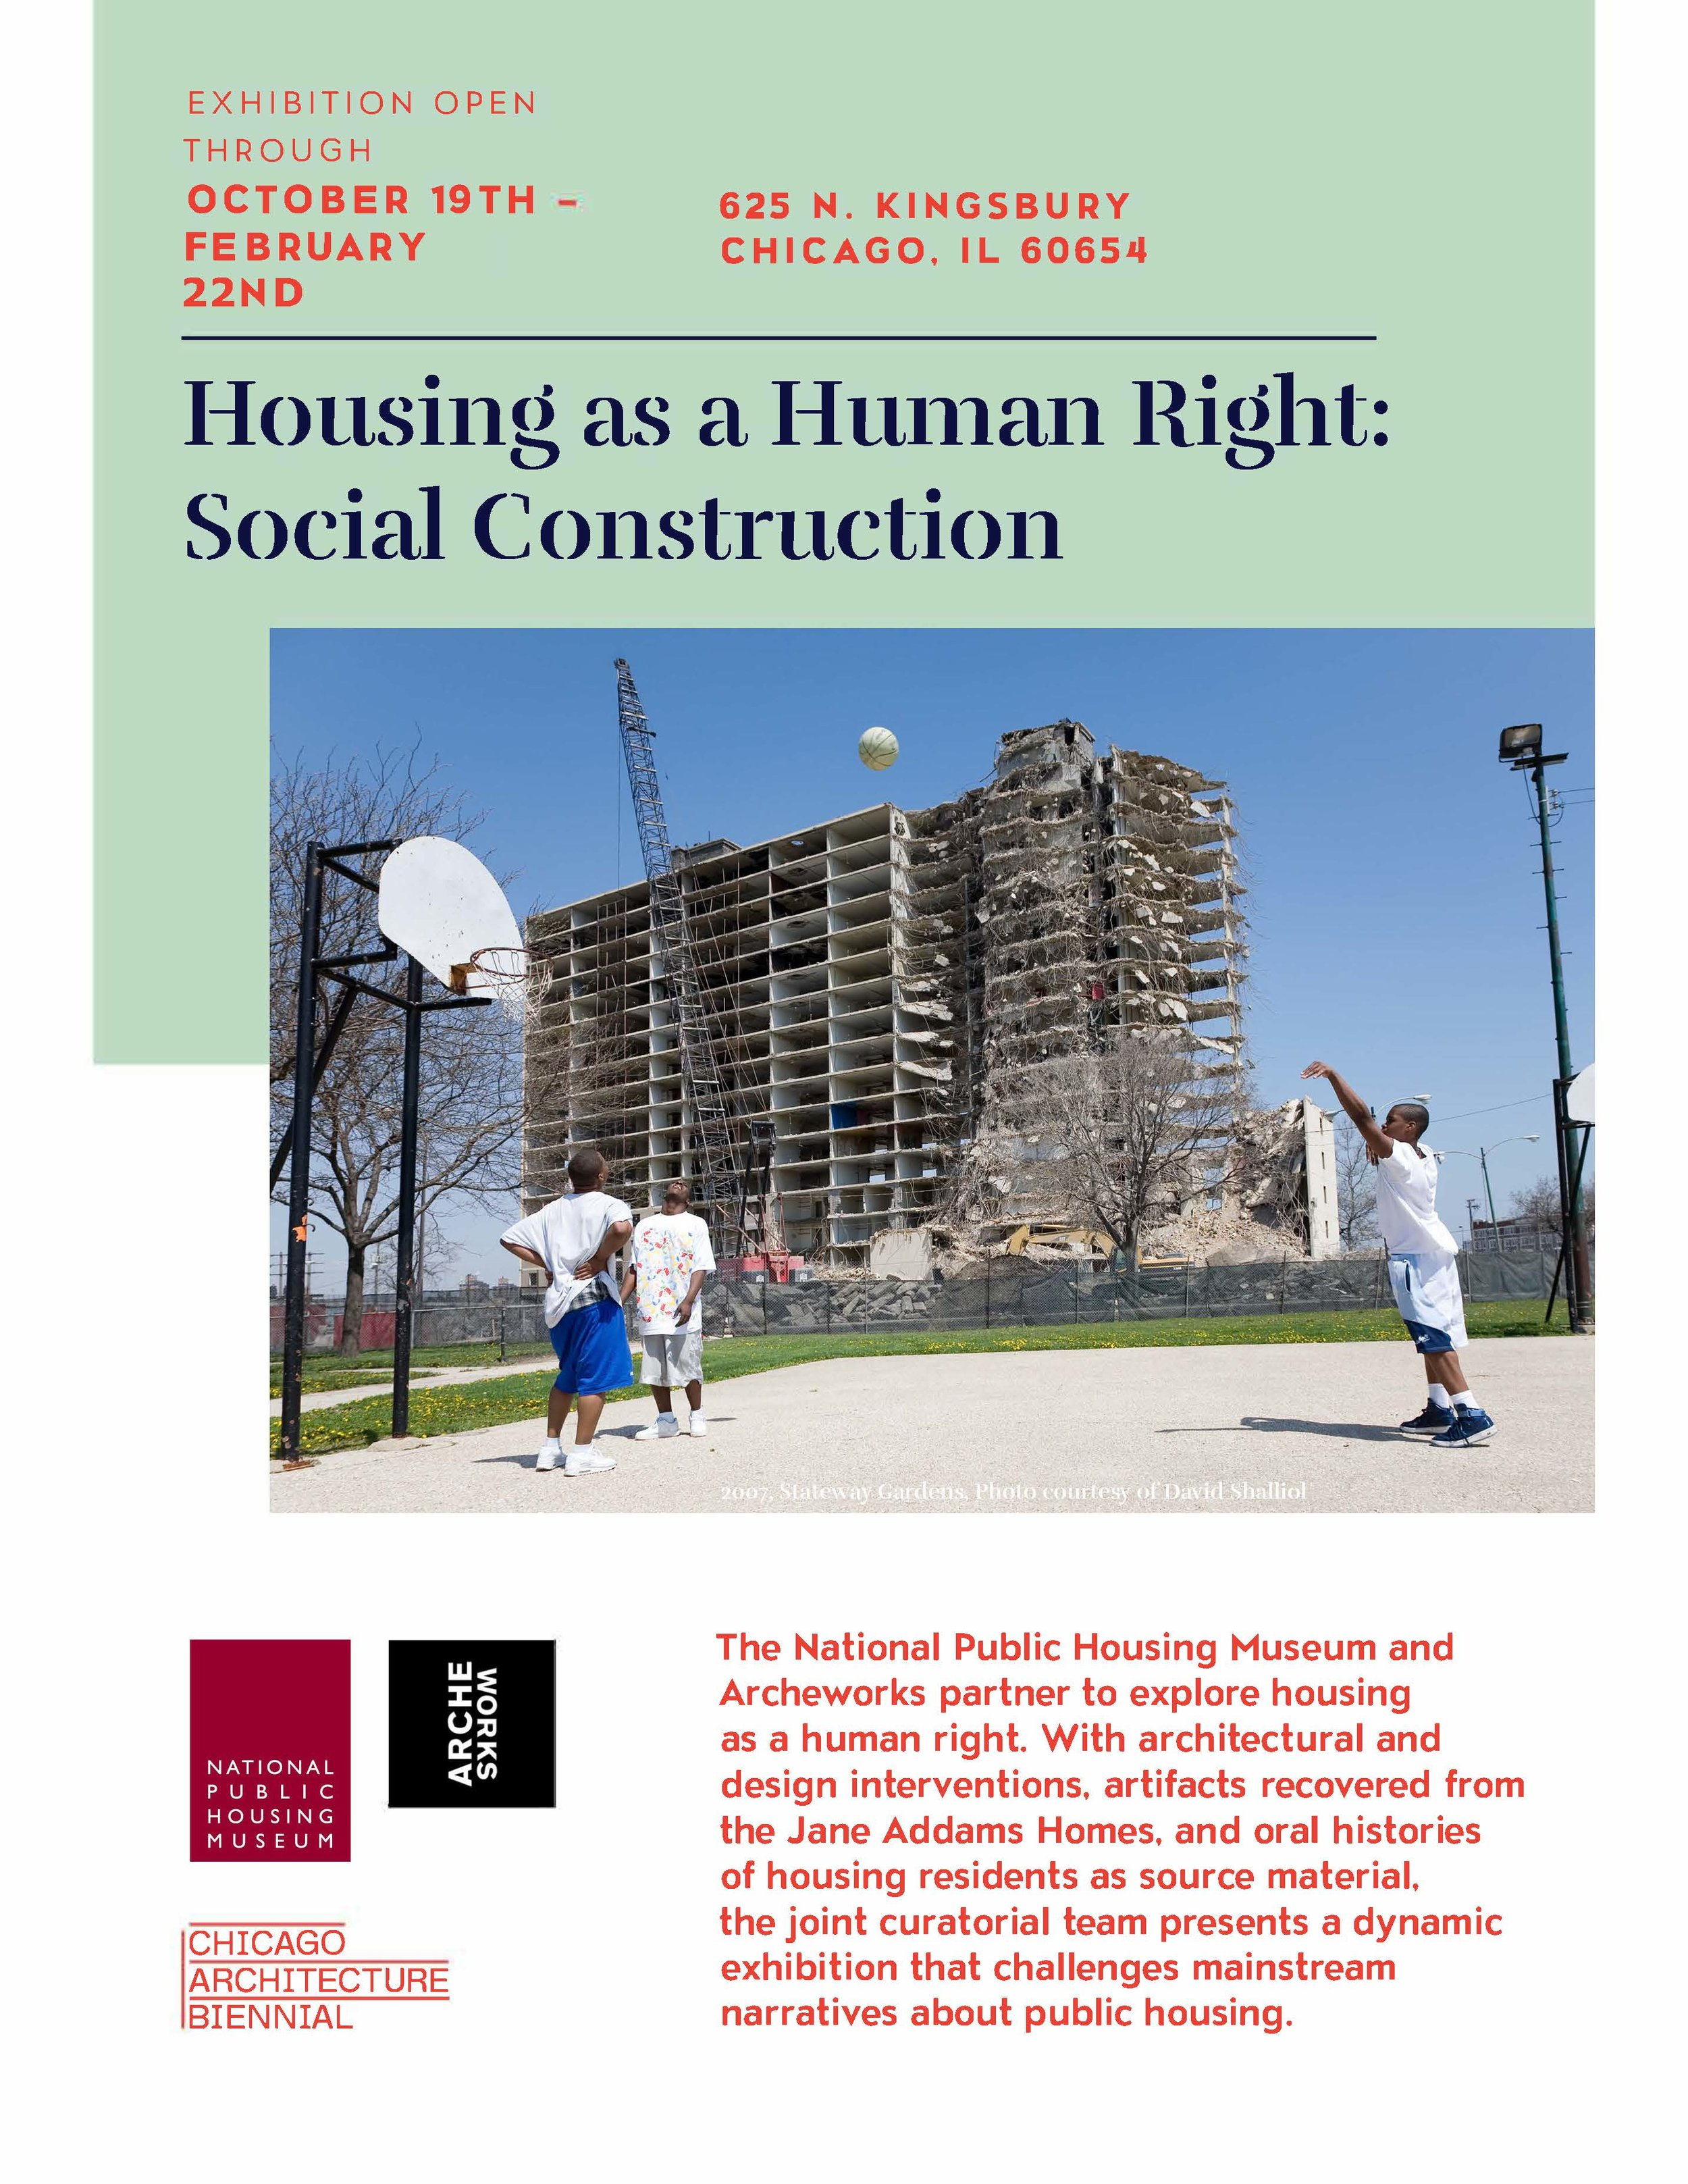 Exhibition Housing as a Human Right - Social Construction Image.jpg